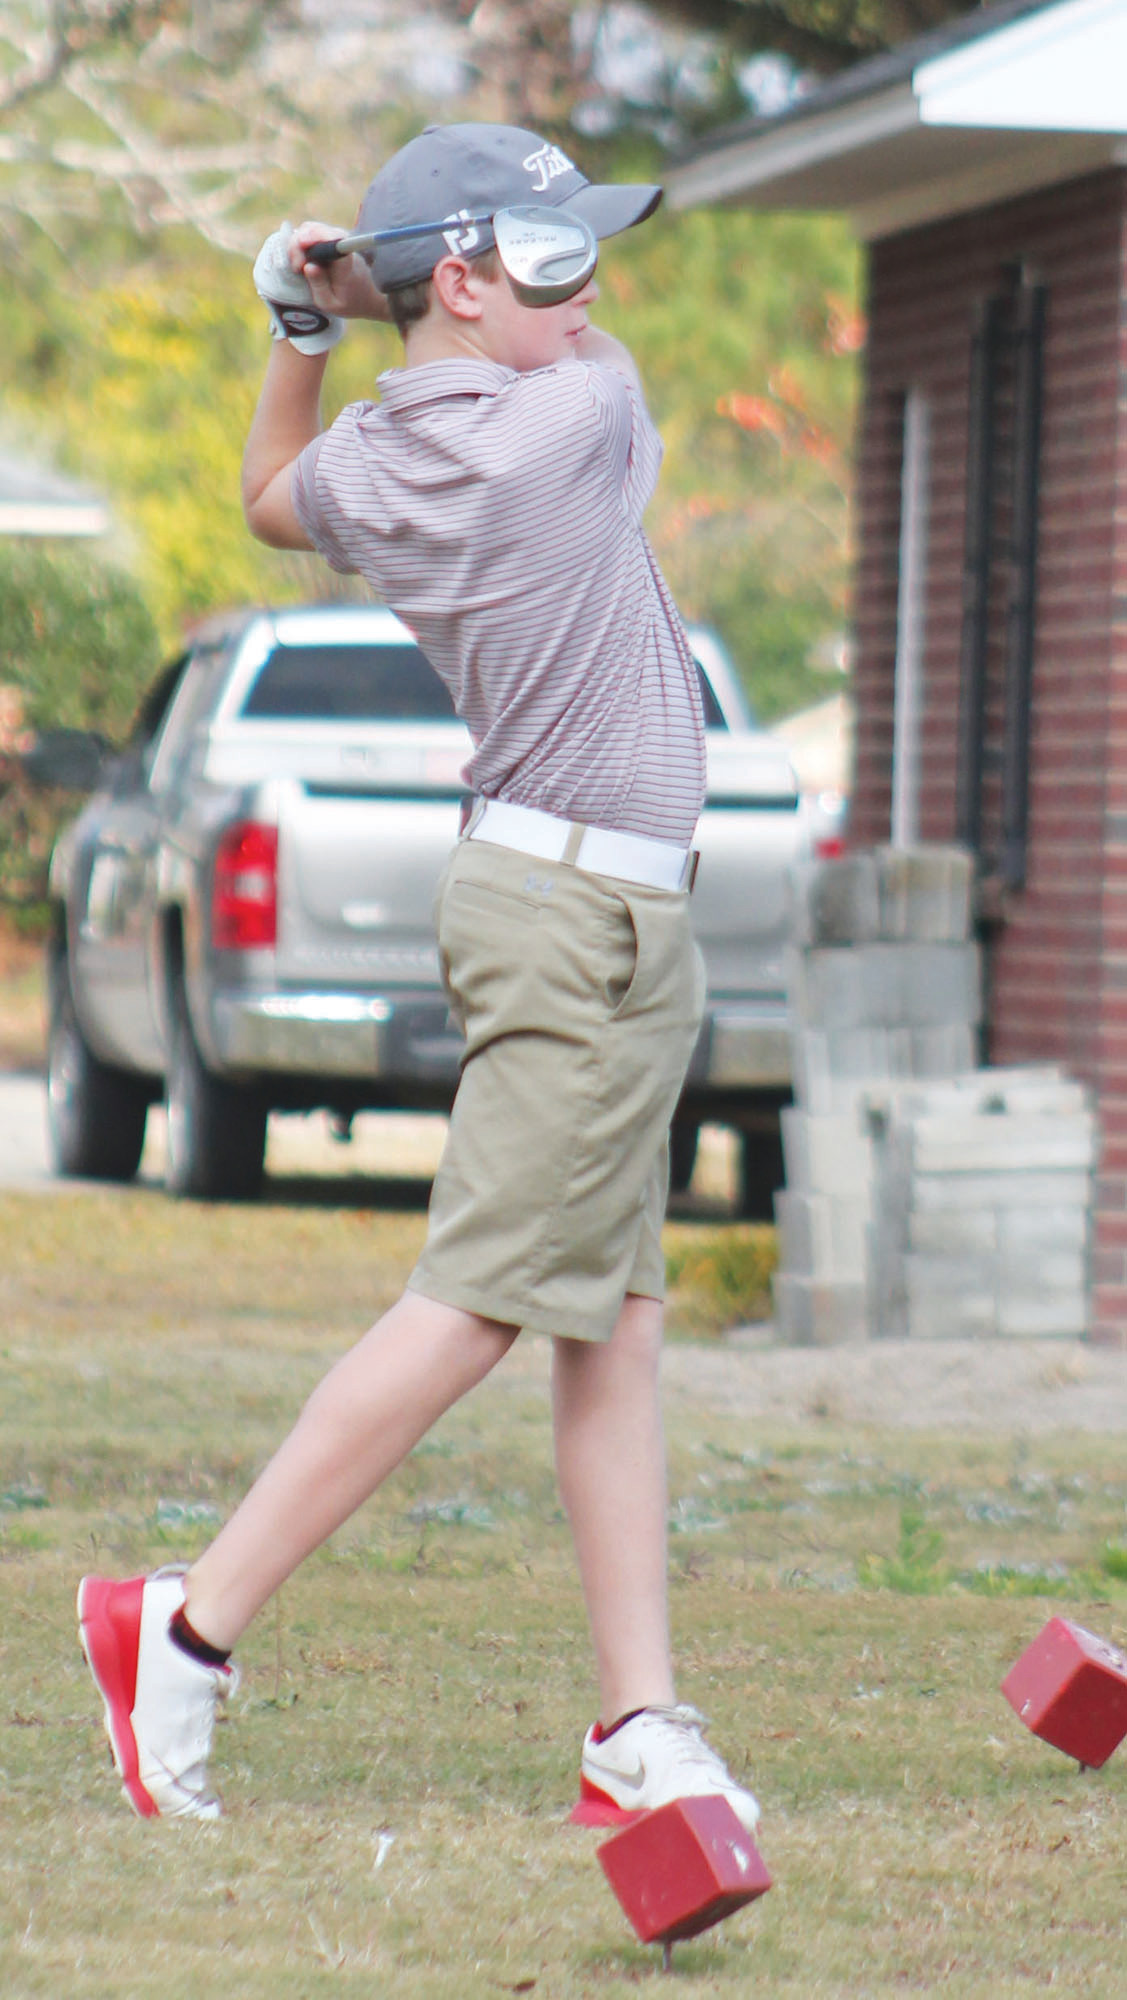 Harper Epperson, a student in the county's Youth Golf Program, participates in the 2016 Clarendon County Youth Golf Program Tournament fundraiser.